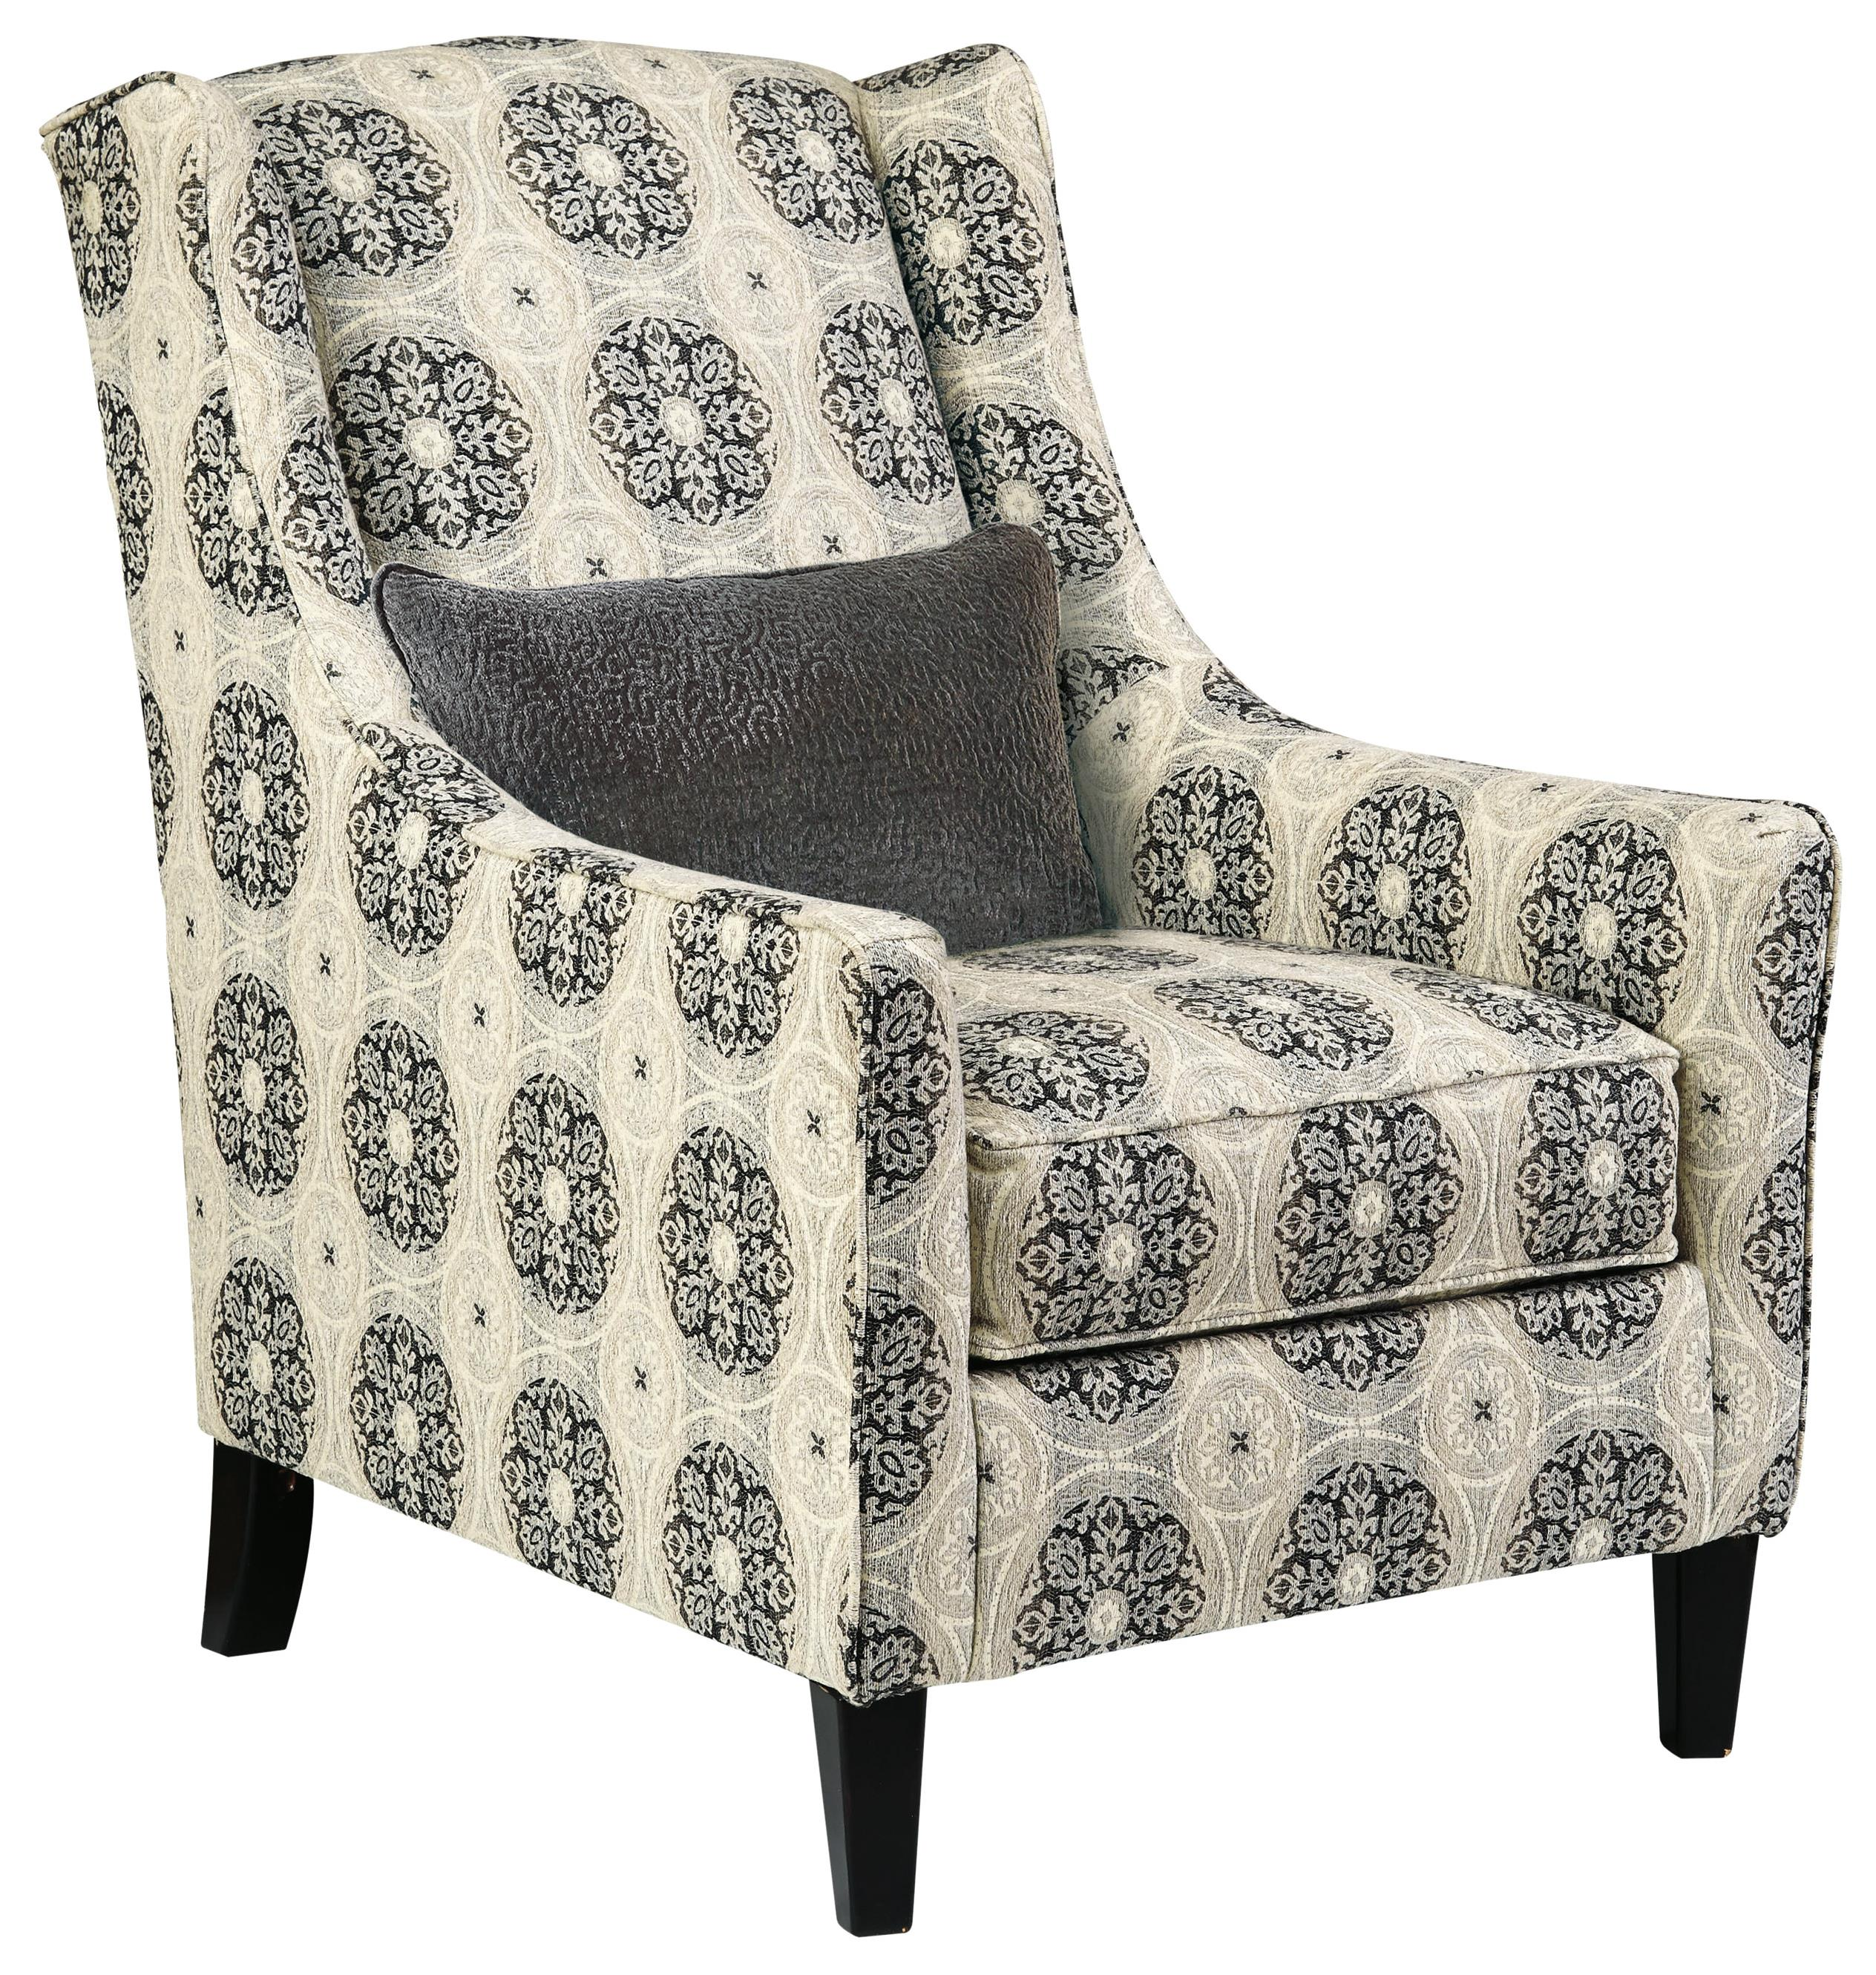 Benchcraft Azlyn Accent Chair - Item Number: 9940221